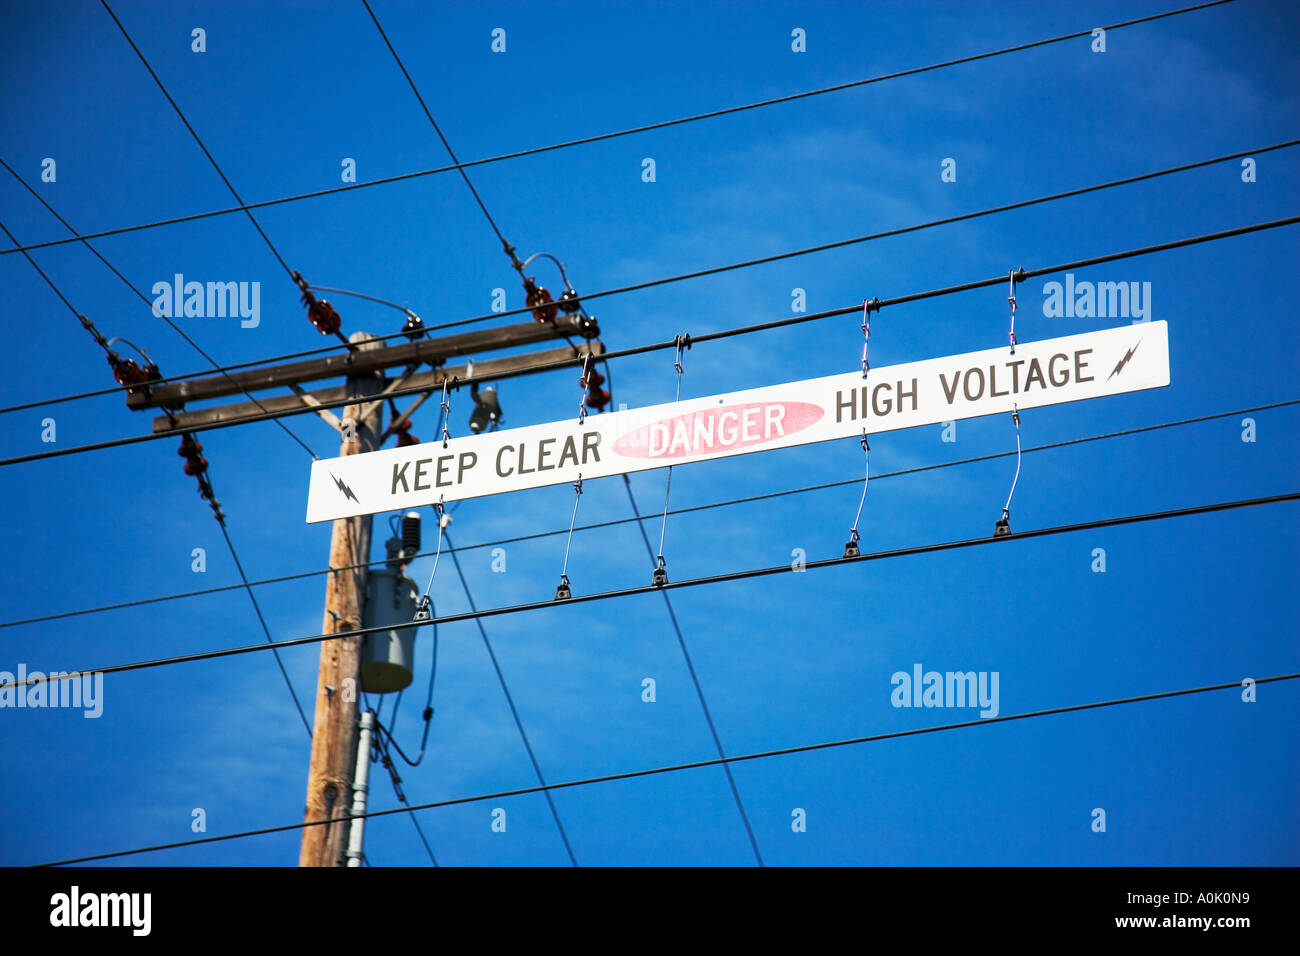 ELECTRICAL WIRES OVERHEAD DANGER